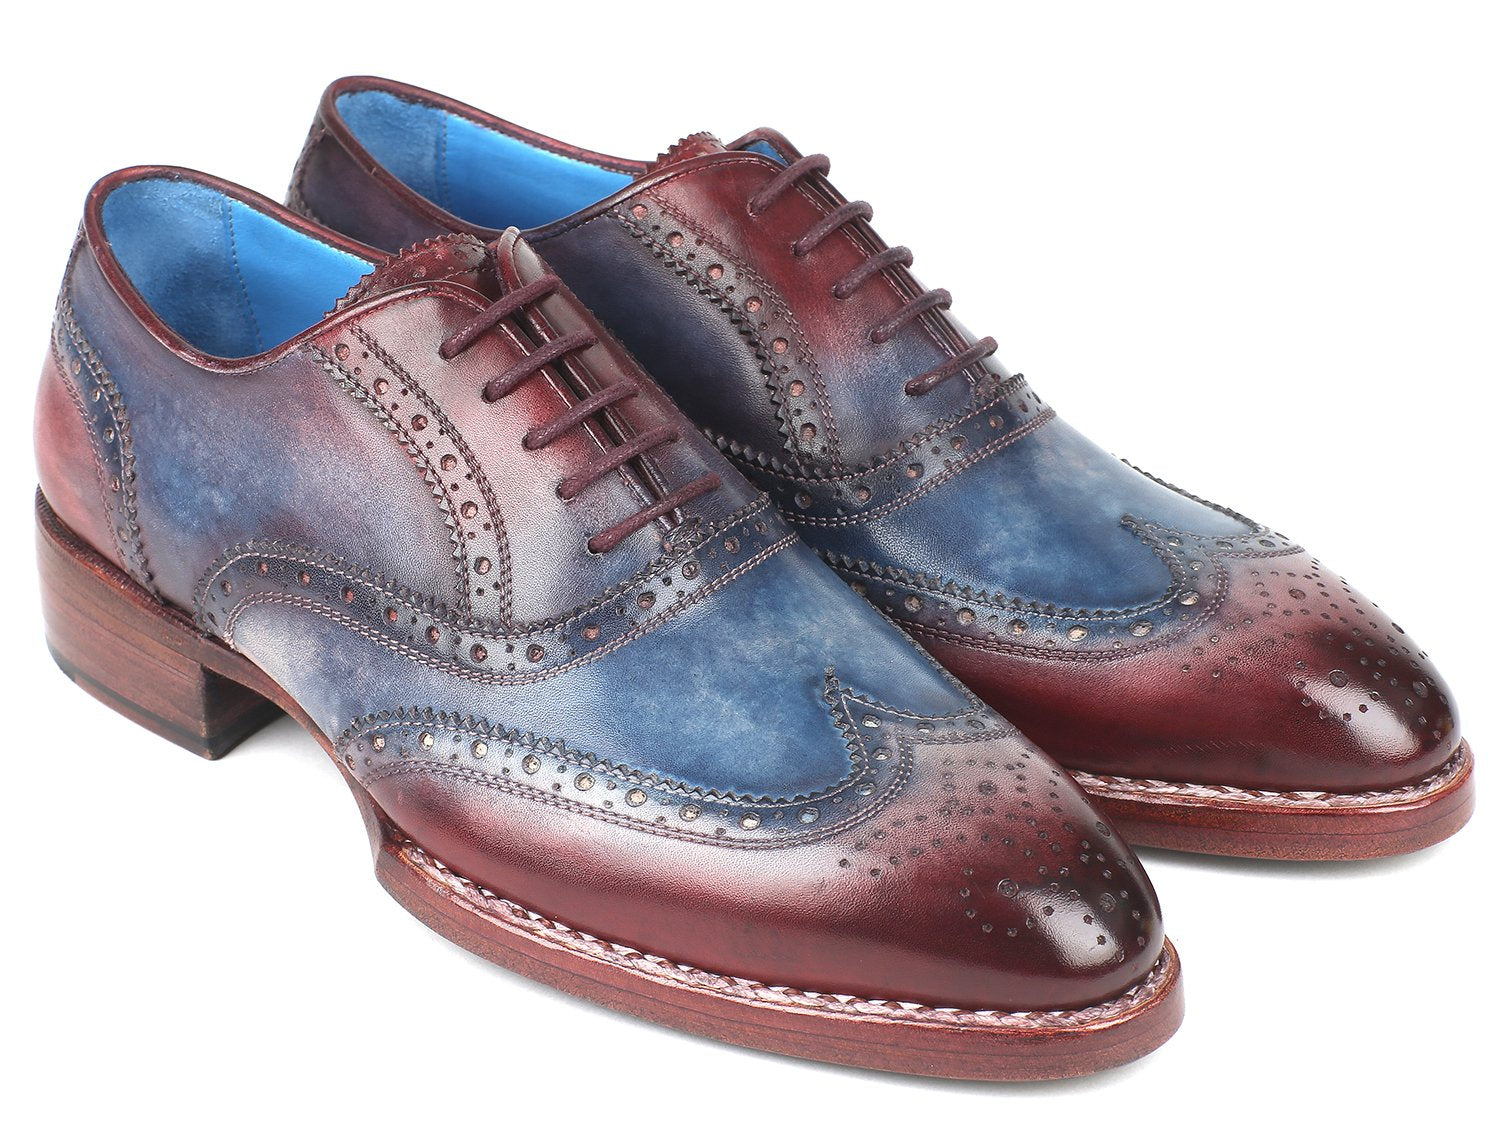 Paul Parkman Goodyear Welted Two Tone Wingtip Oxfords Blue & Bordeaux (ID#27LD77)